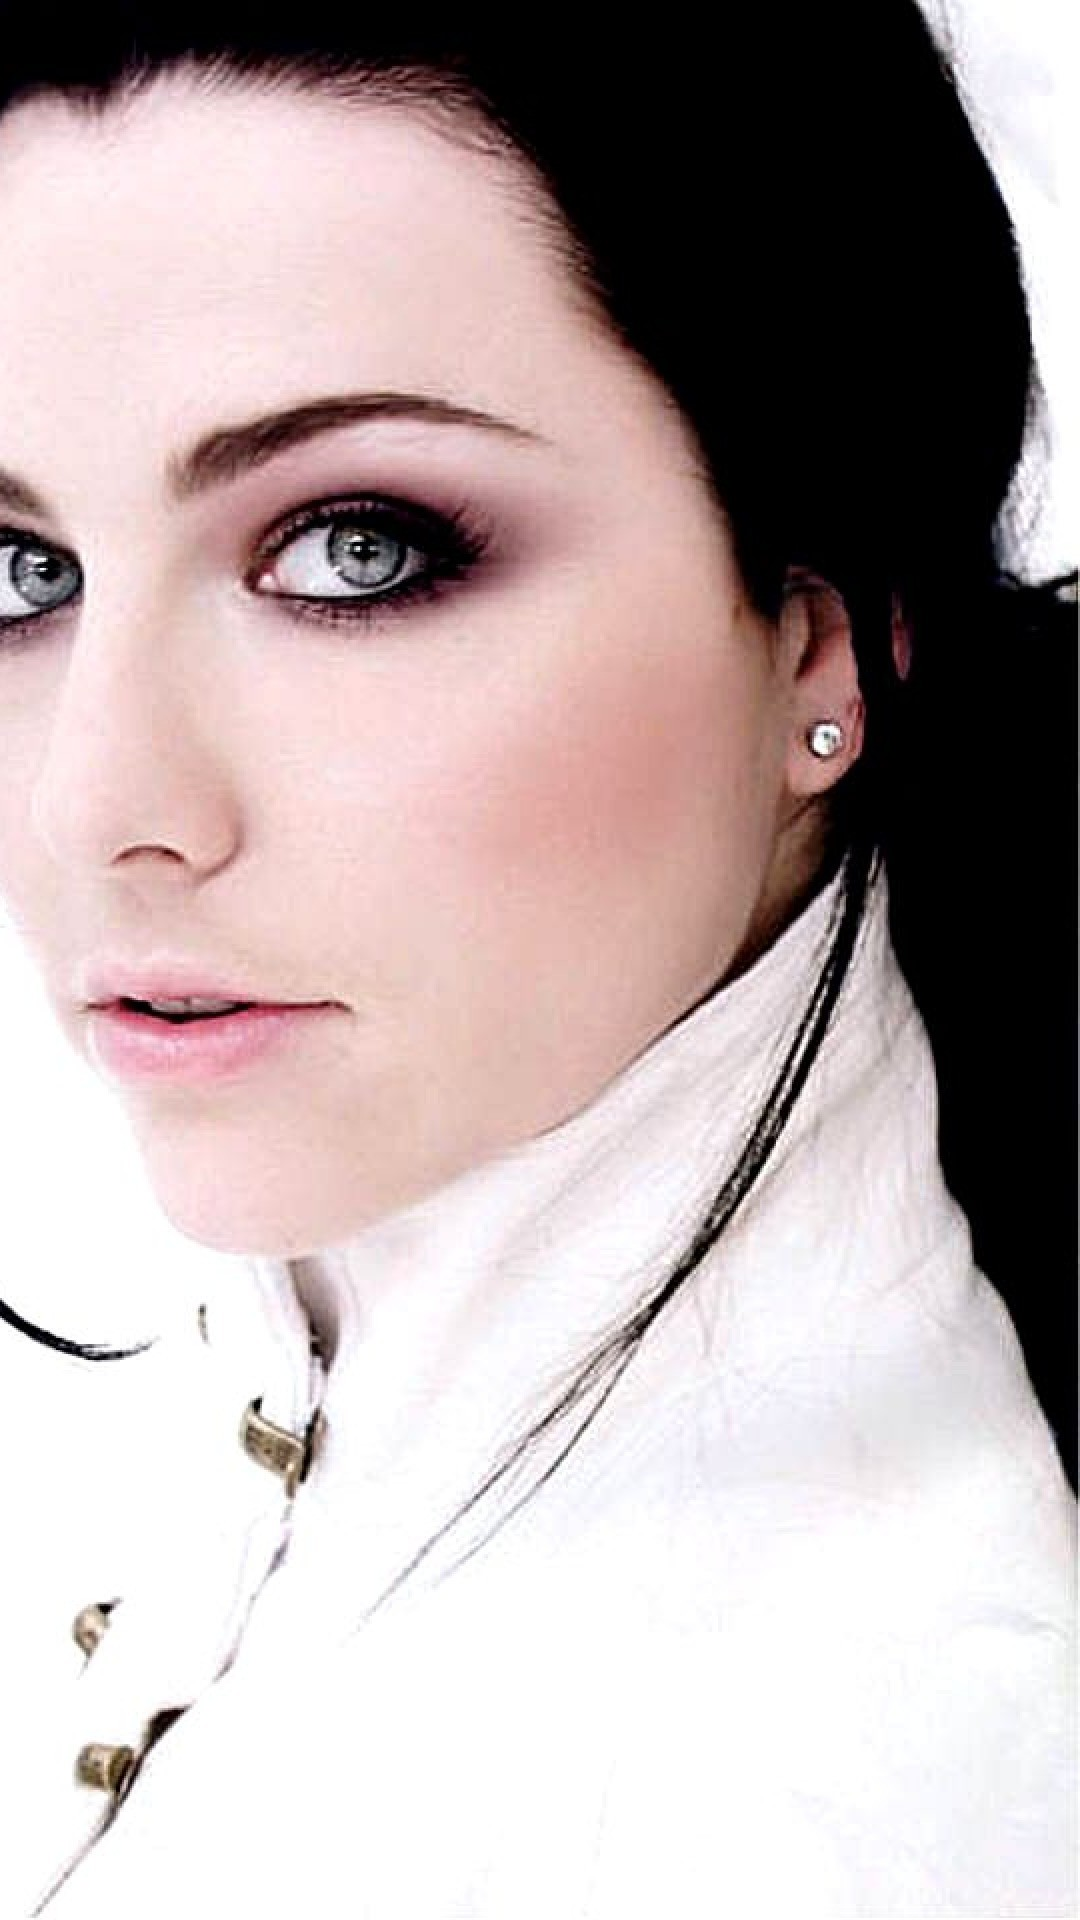 Evanescence Hd Wallpapers for iPhone